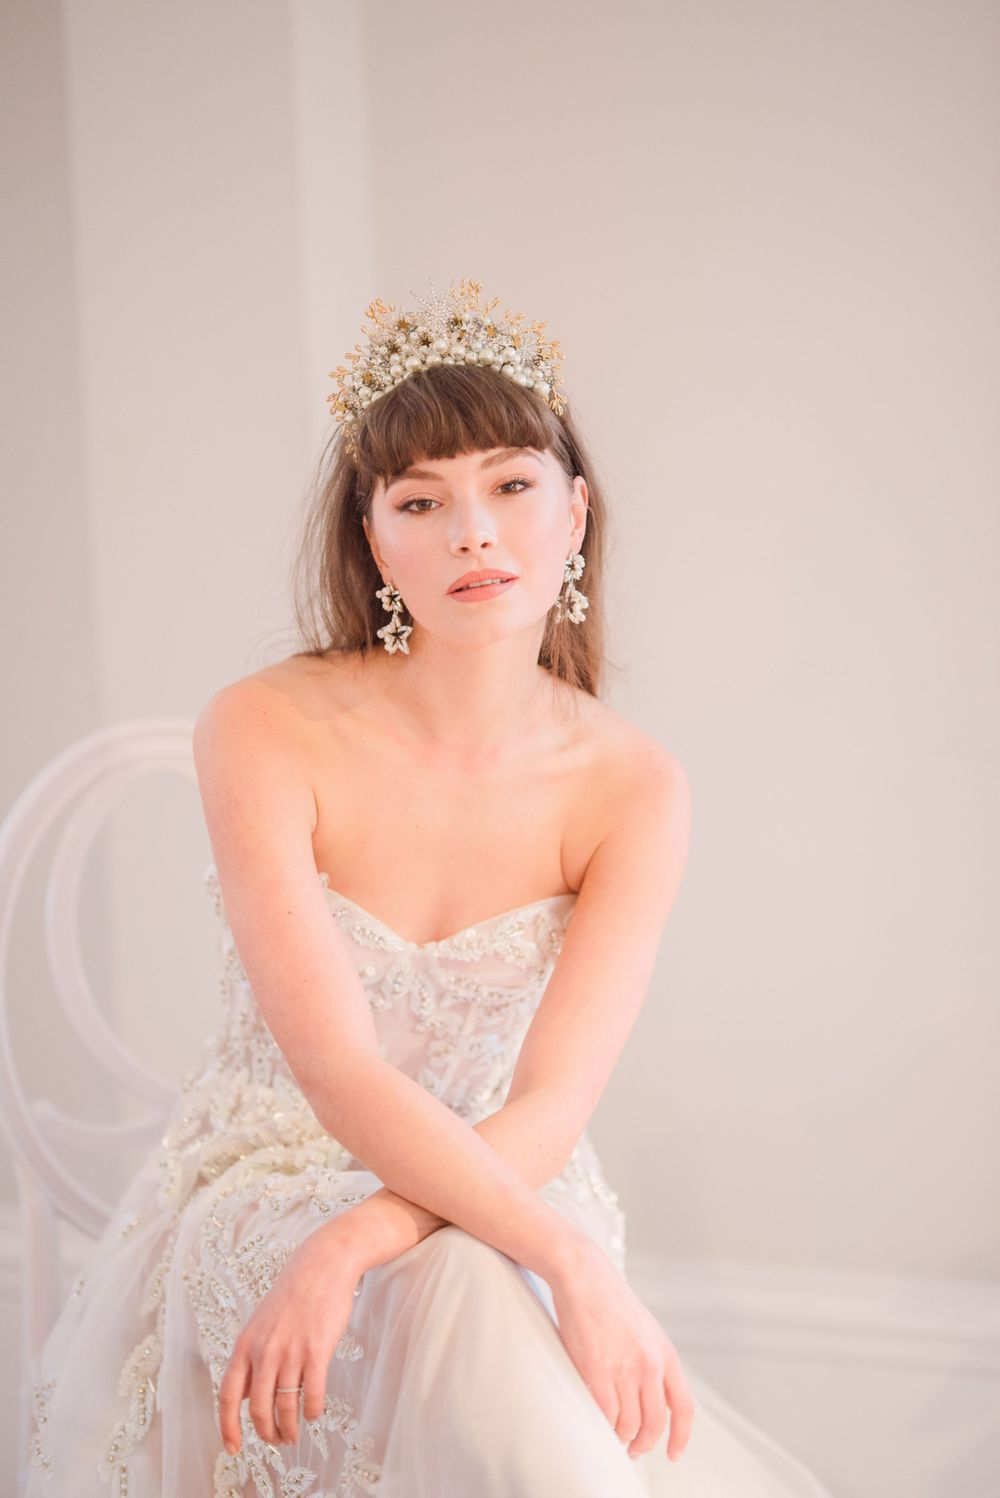 modern bride wearing beaded Emma Beamont wedding dress with statement celestial star crown and star earrings